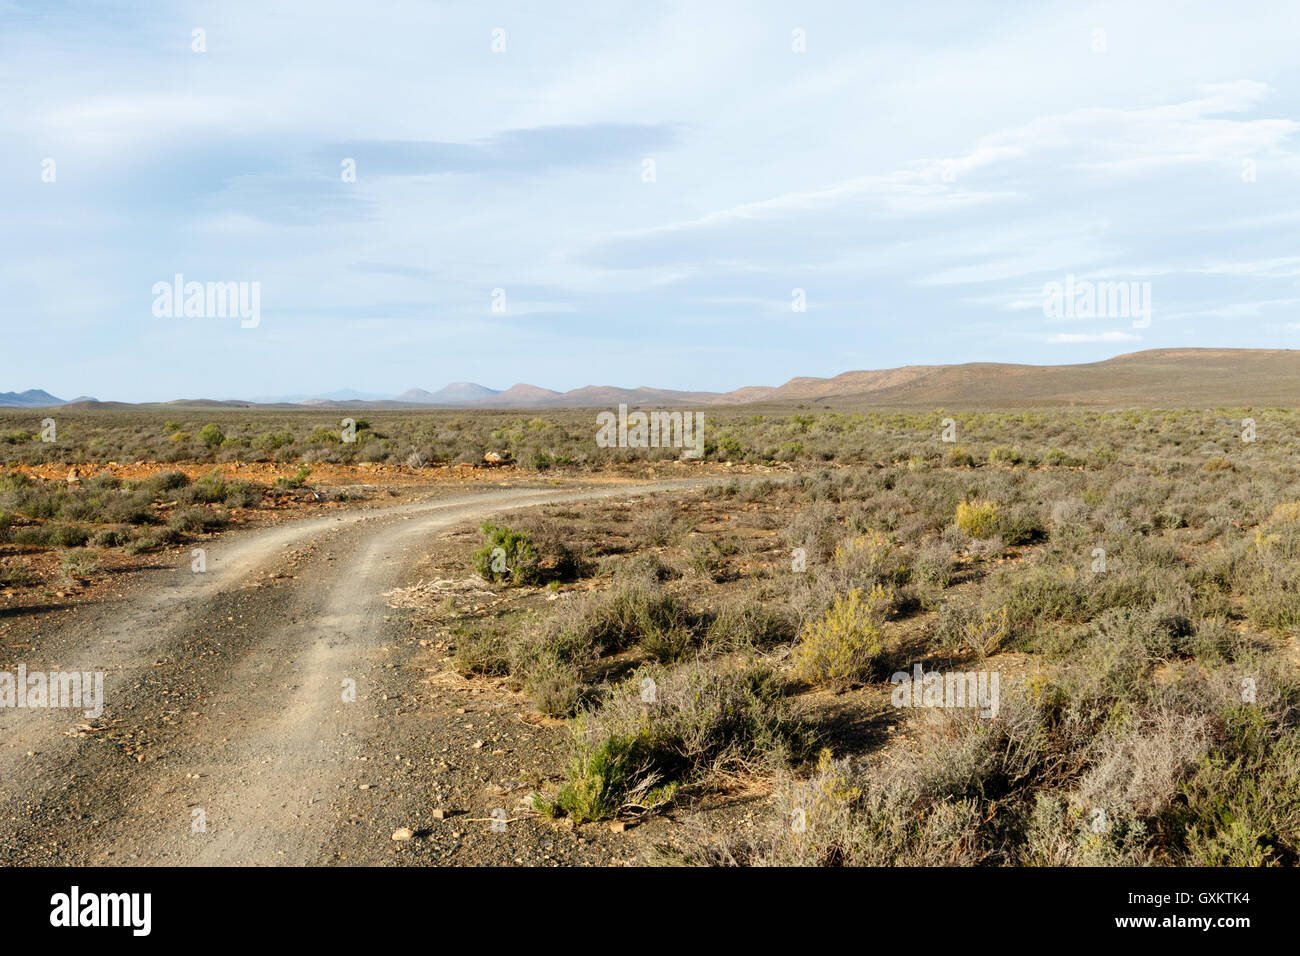 The Road - Sutherland is a town with about 2,841 inhabitants in the Northern Cape province of South Africa. It lies - Stock Image